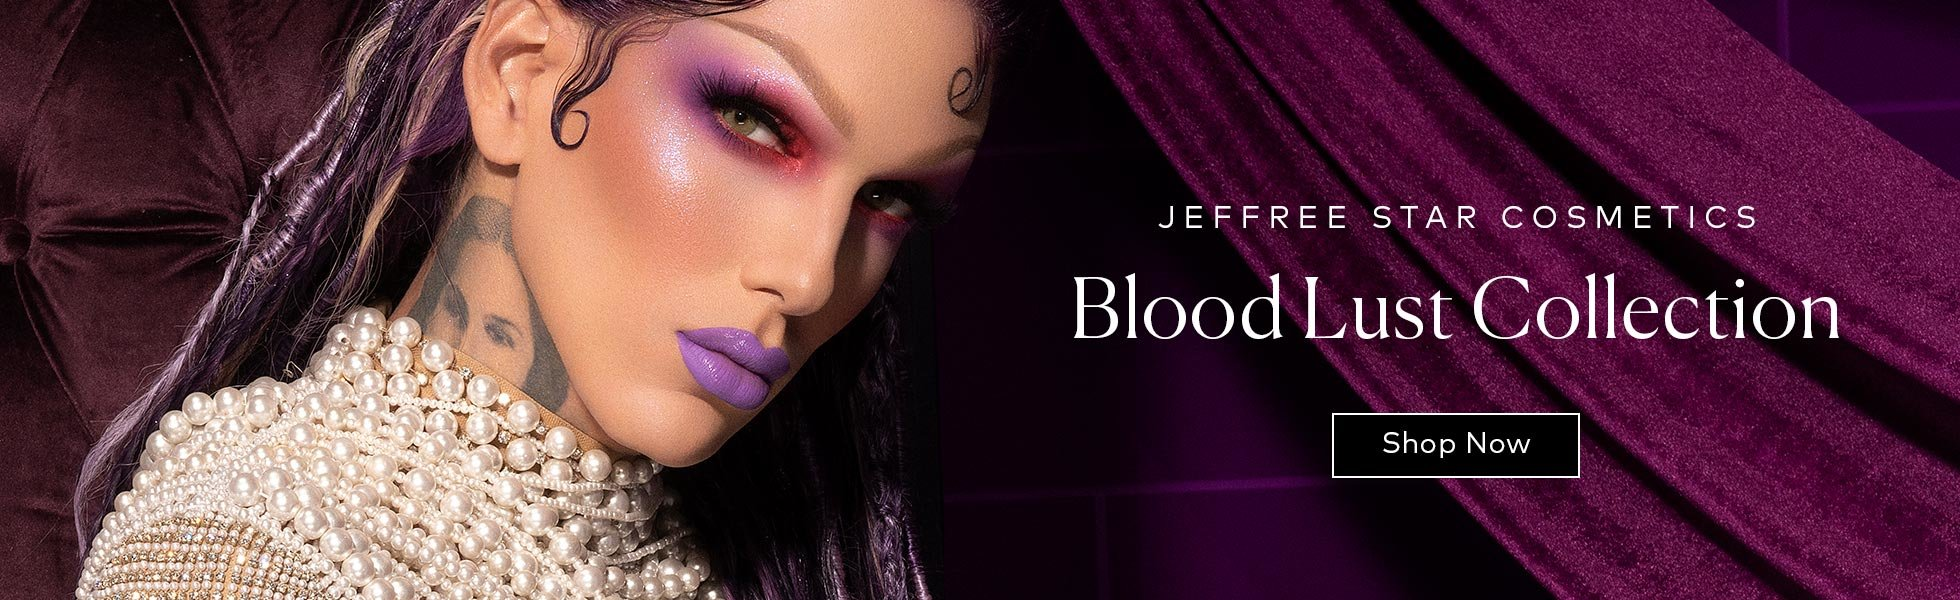 Shop the Jeffree Star Cosmetics Blood Lust Collection on Beautylish.com